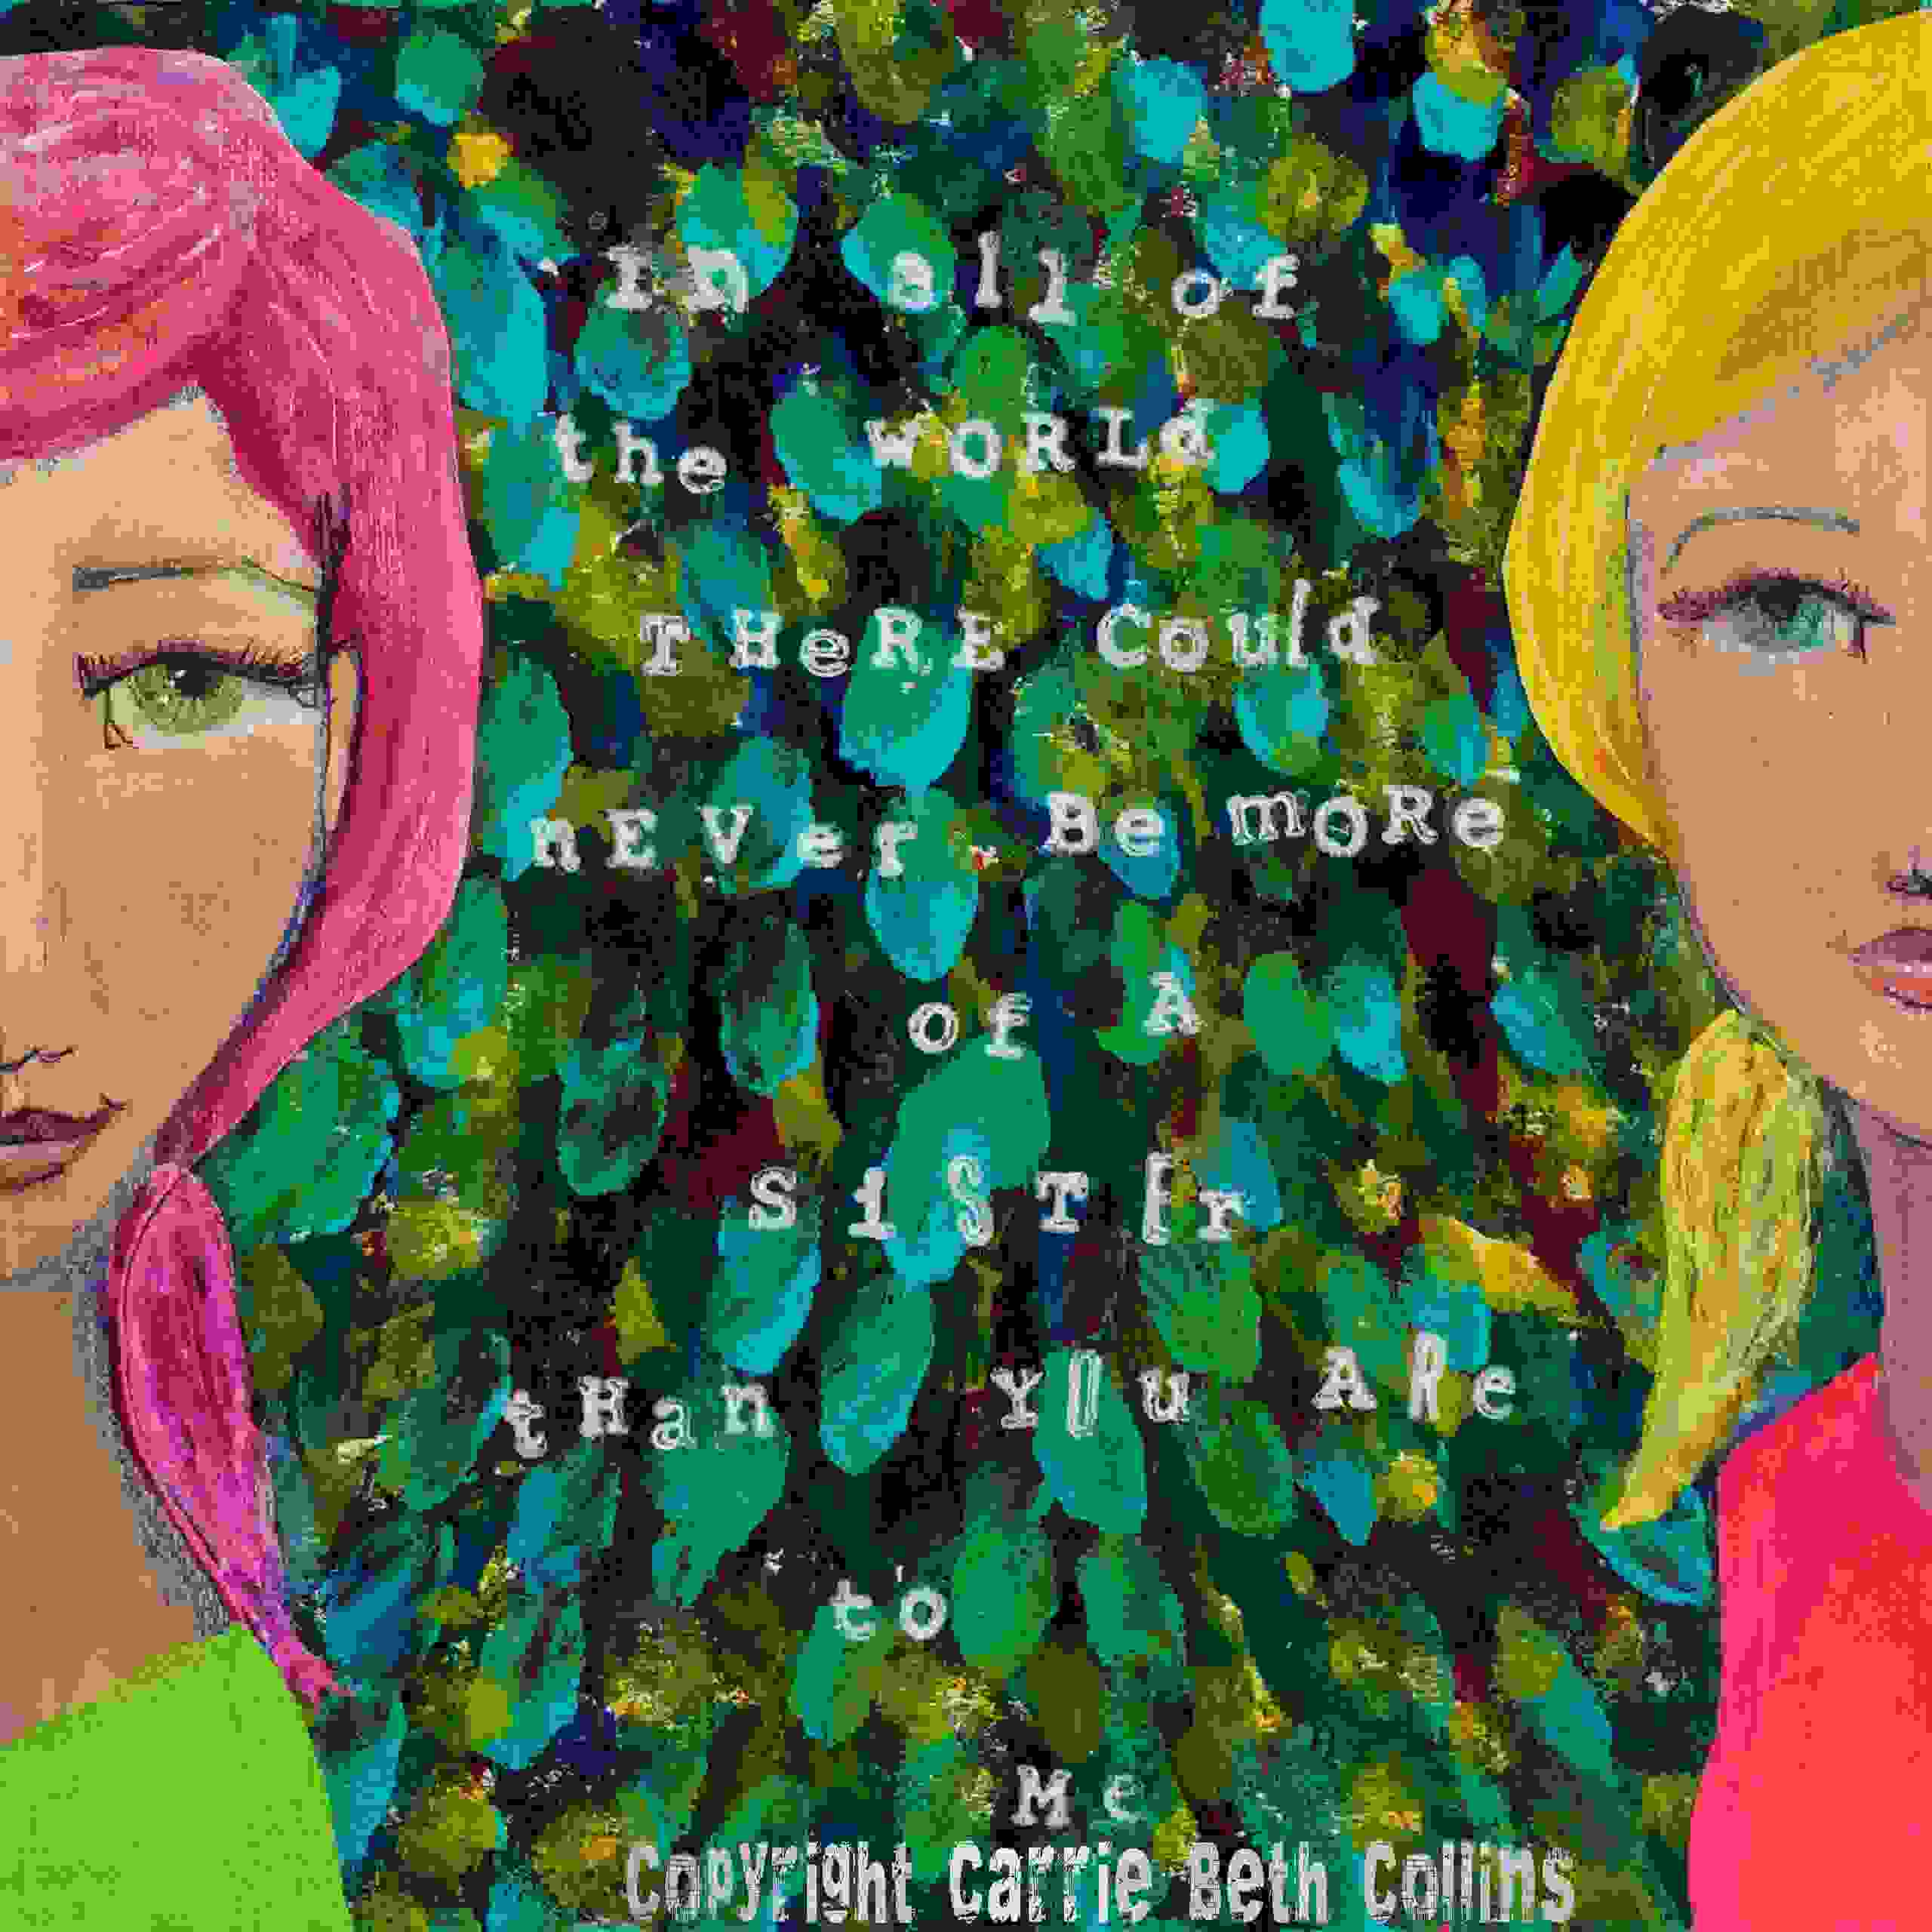 best friend, sister, art, painter, journal writing, Carrie Beth Collins